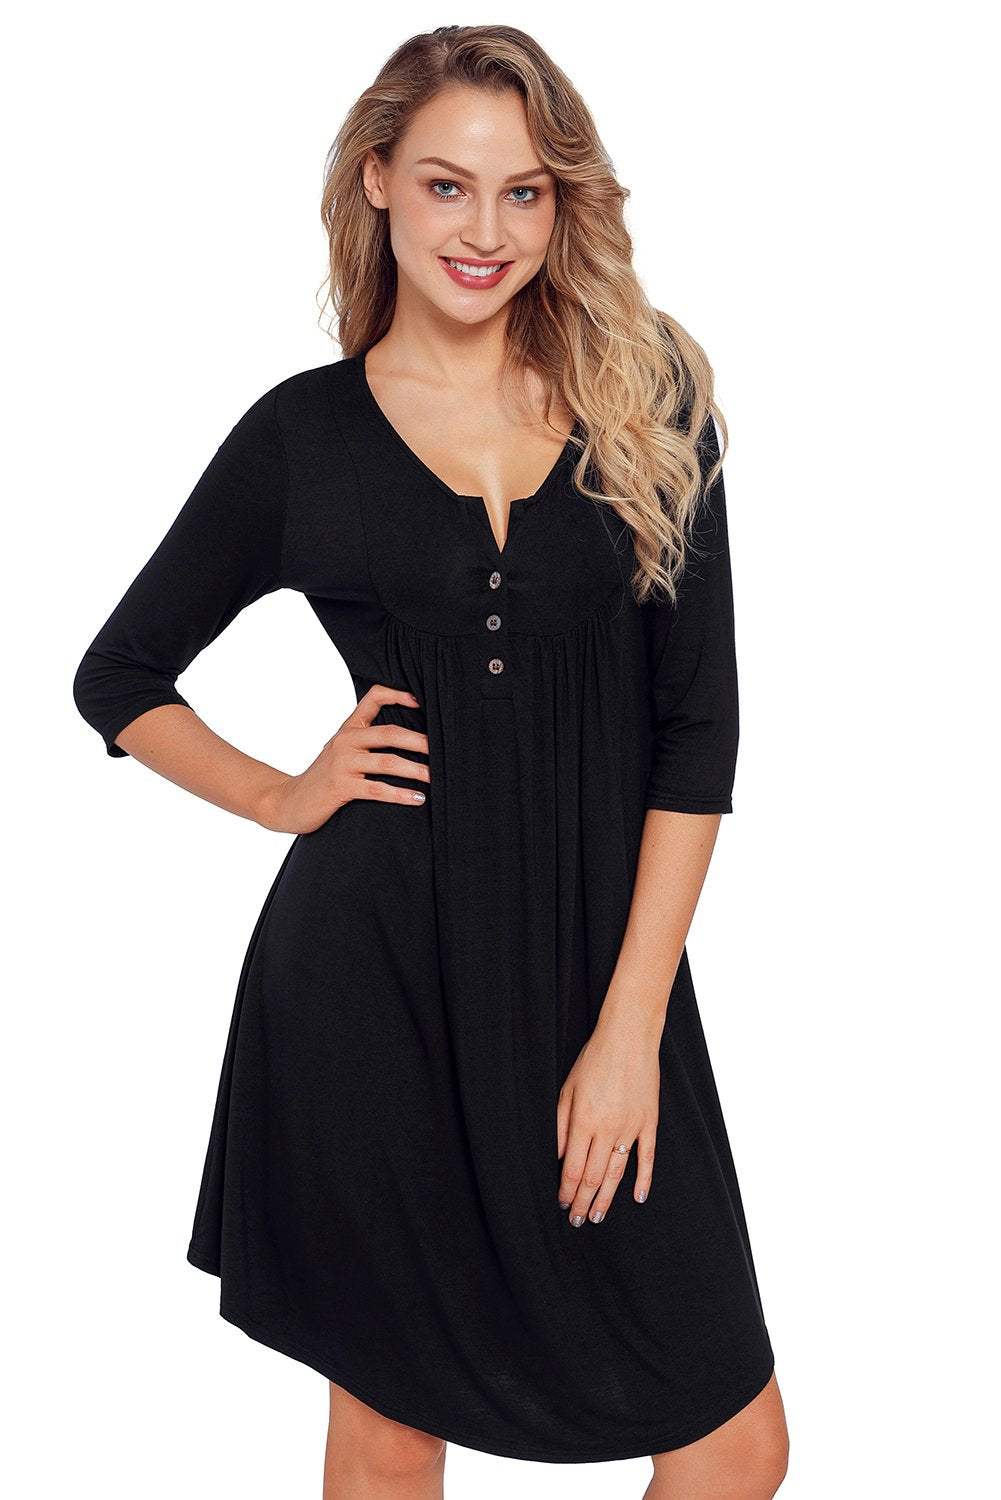 Black Quarter Sleeve Casual Tunic Dress-Dresses, Jersey Dresses-Azura Exchange